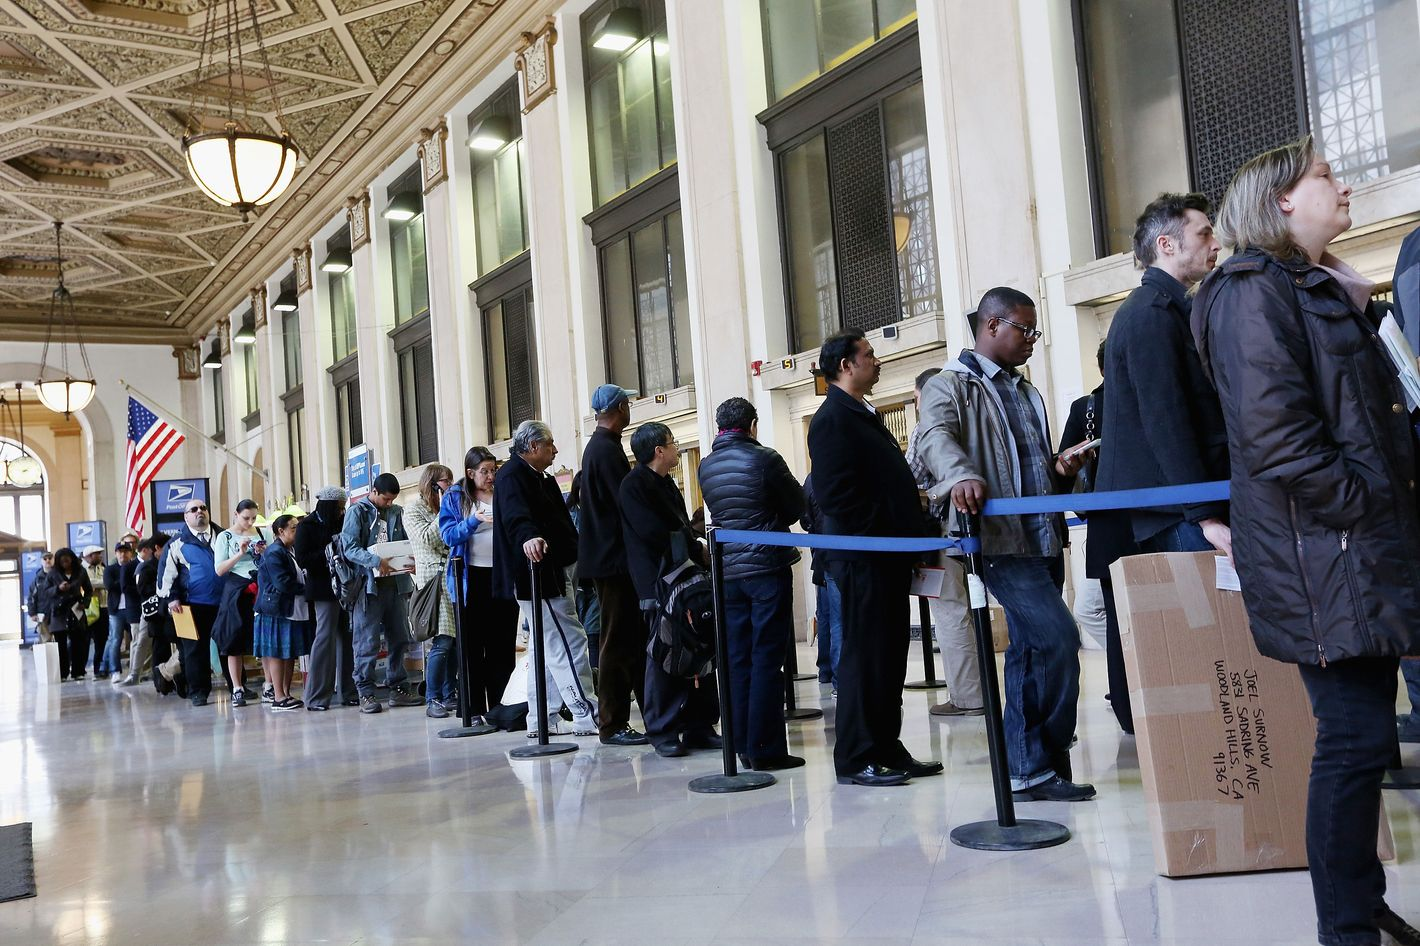 NEW YORK, NY - APRIL 15:  People wait in line inside the James A. Farley post office building April 15, 2013 in the Manhattan borough of New York City. With the U.S. tax deadline of midnight April 15 rapidly approaching, last-minute filers are filling up the nation's post offices.  (Photo by Mario Tama/Getty Images)